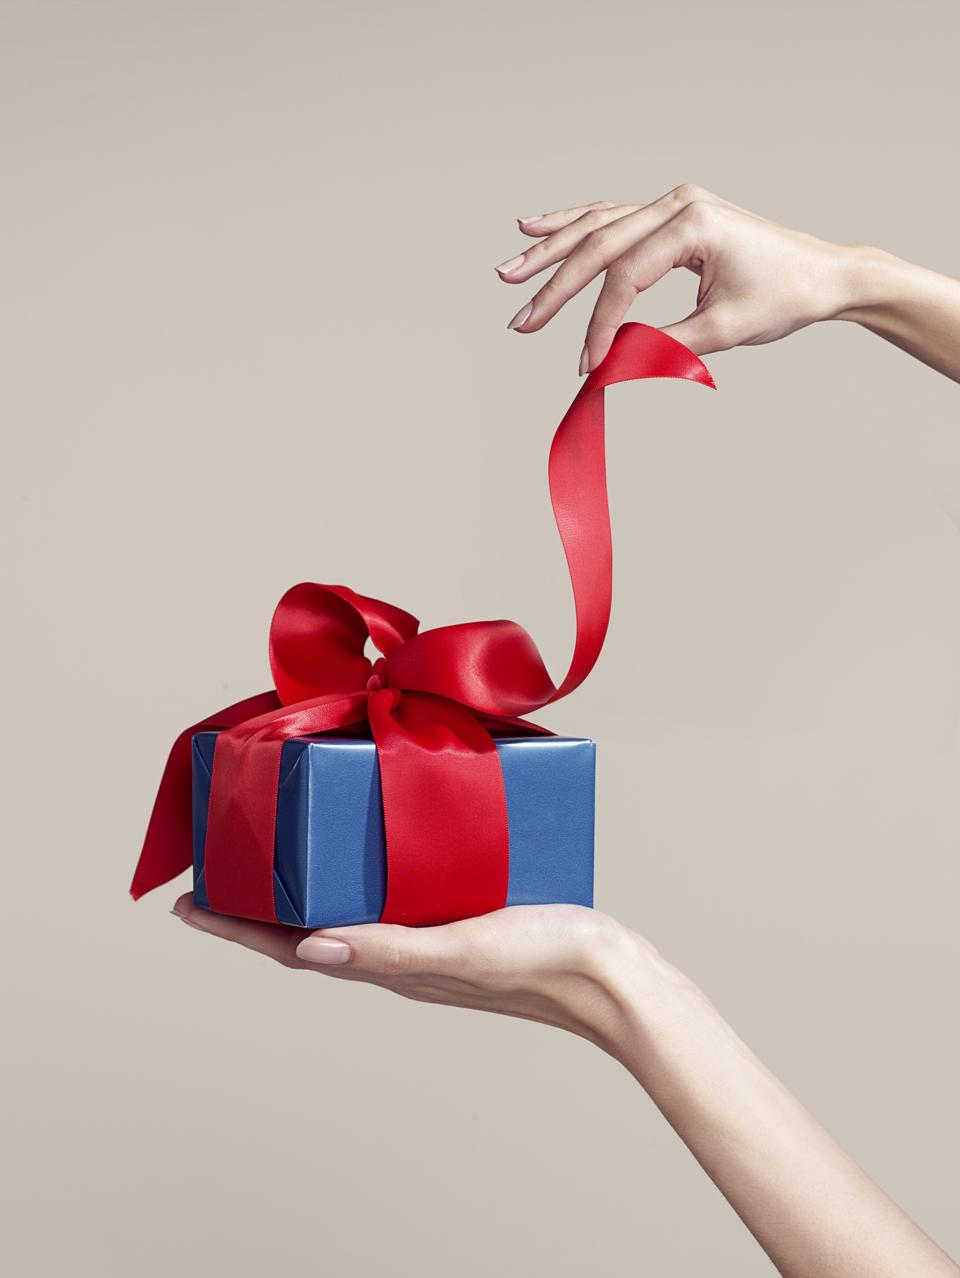 Gifts have to be reported on Gift tax returns which are complicated!